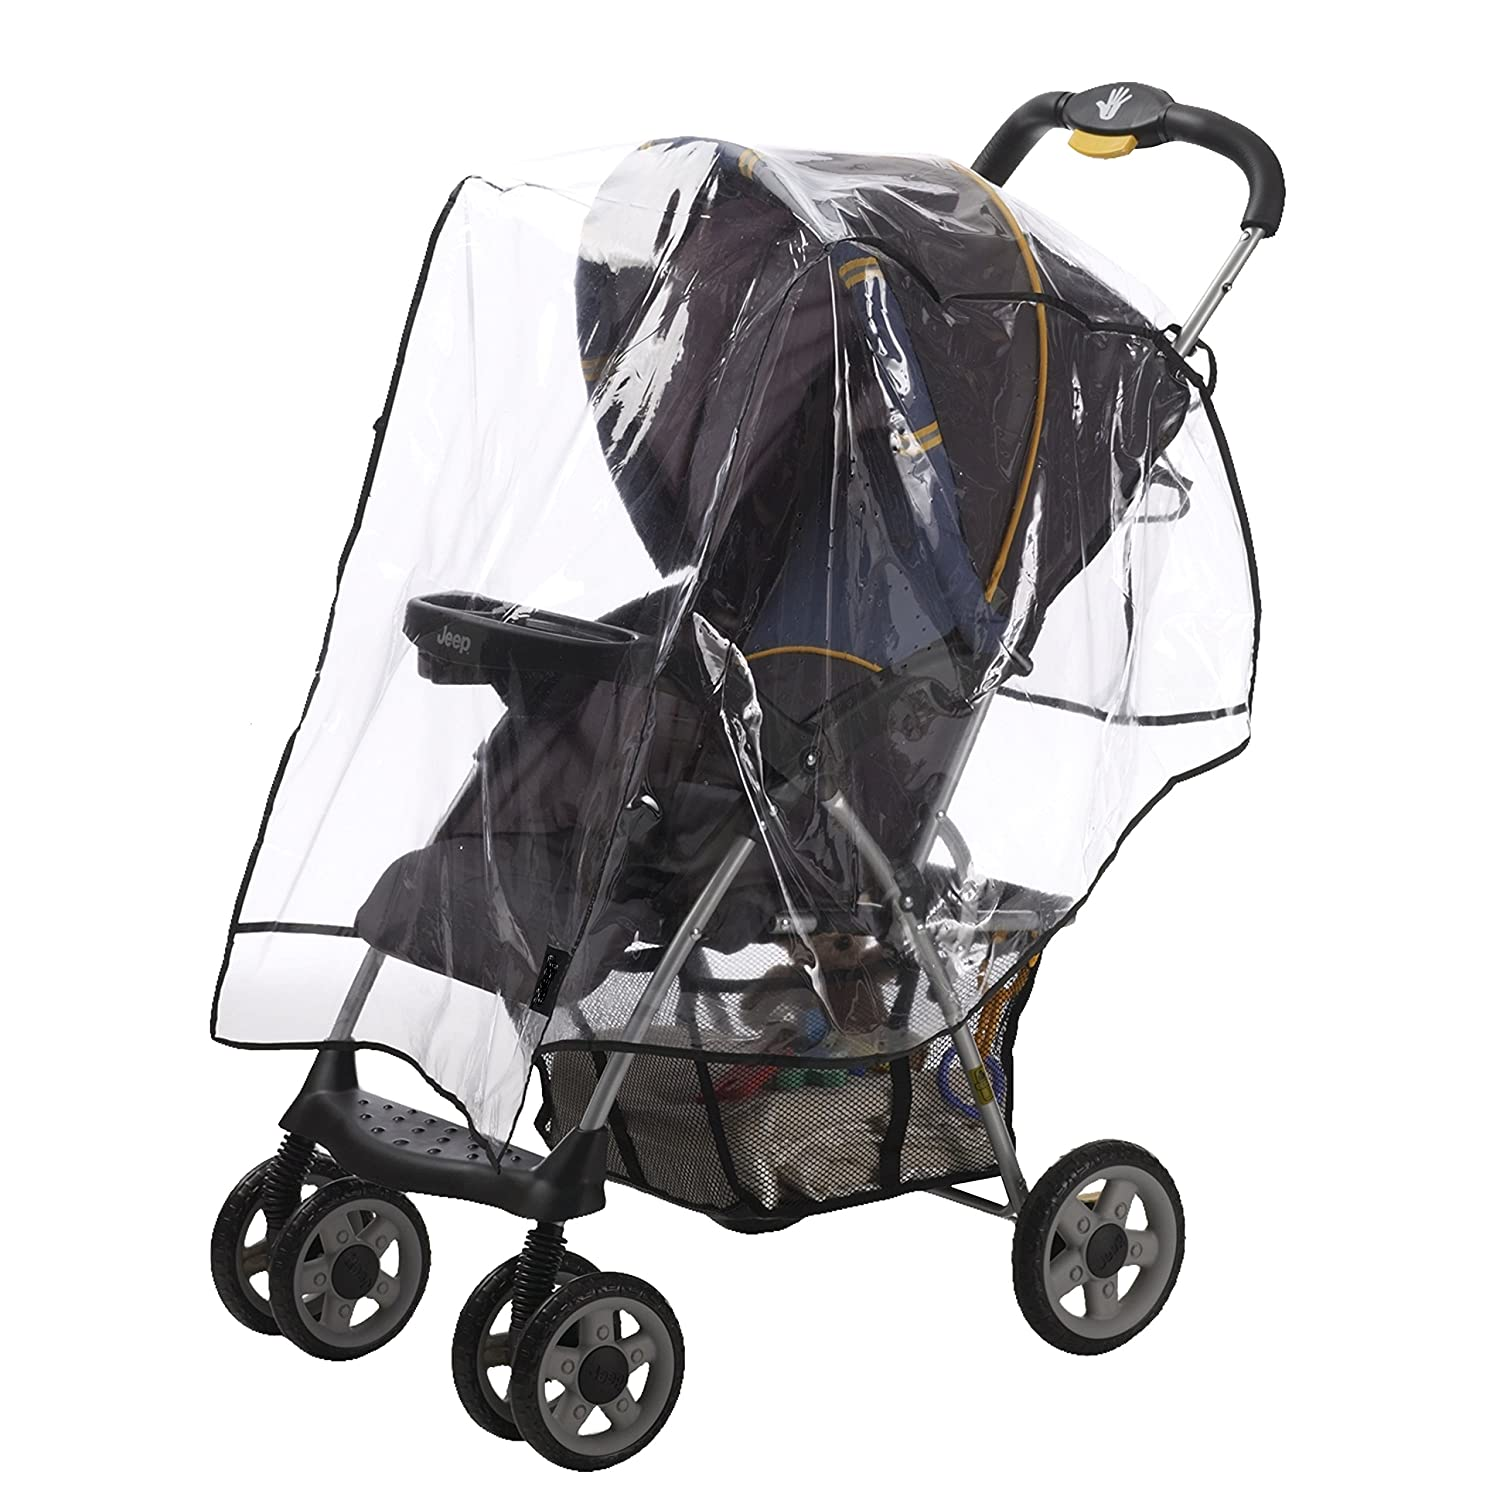 Amazon.com : Alphabetz Stroller Rain Cover,